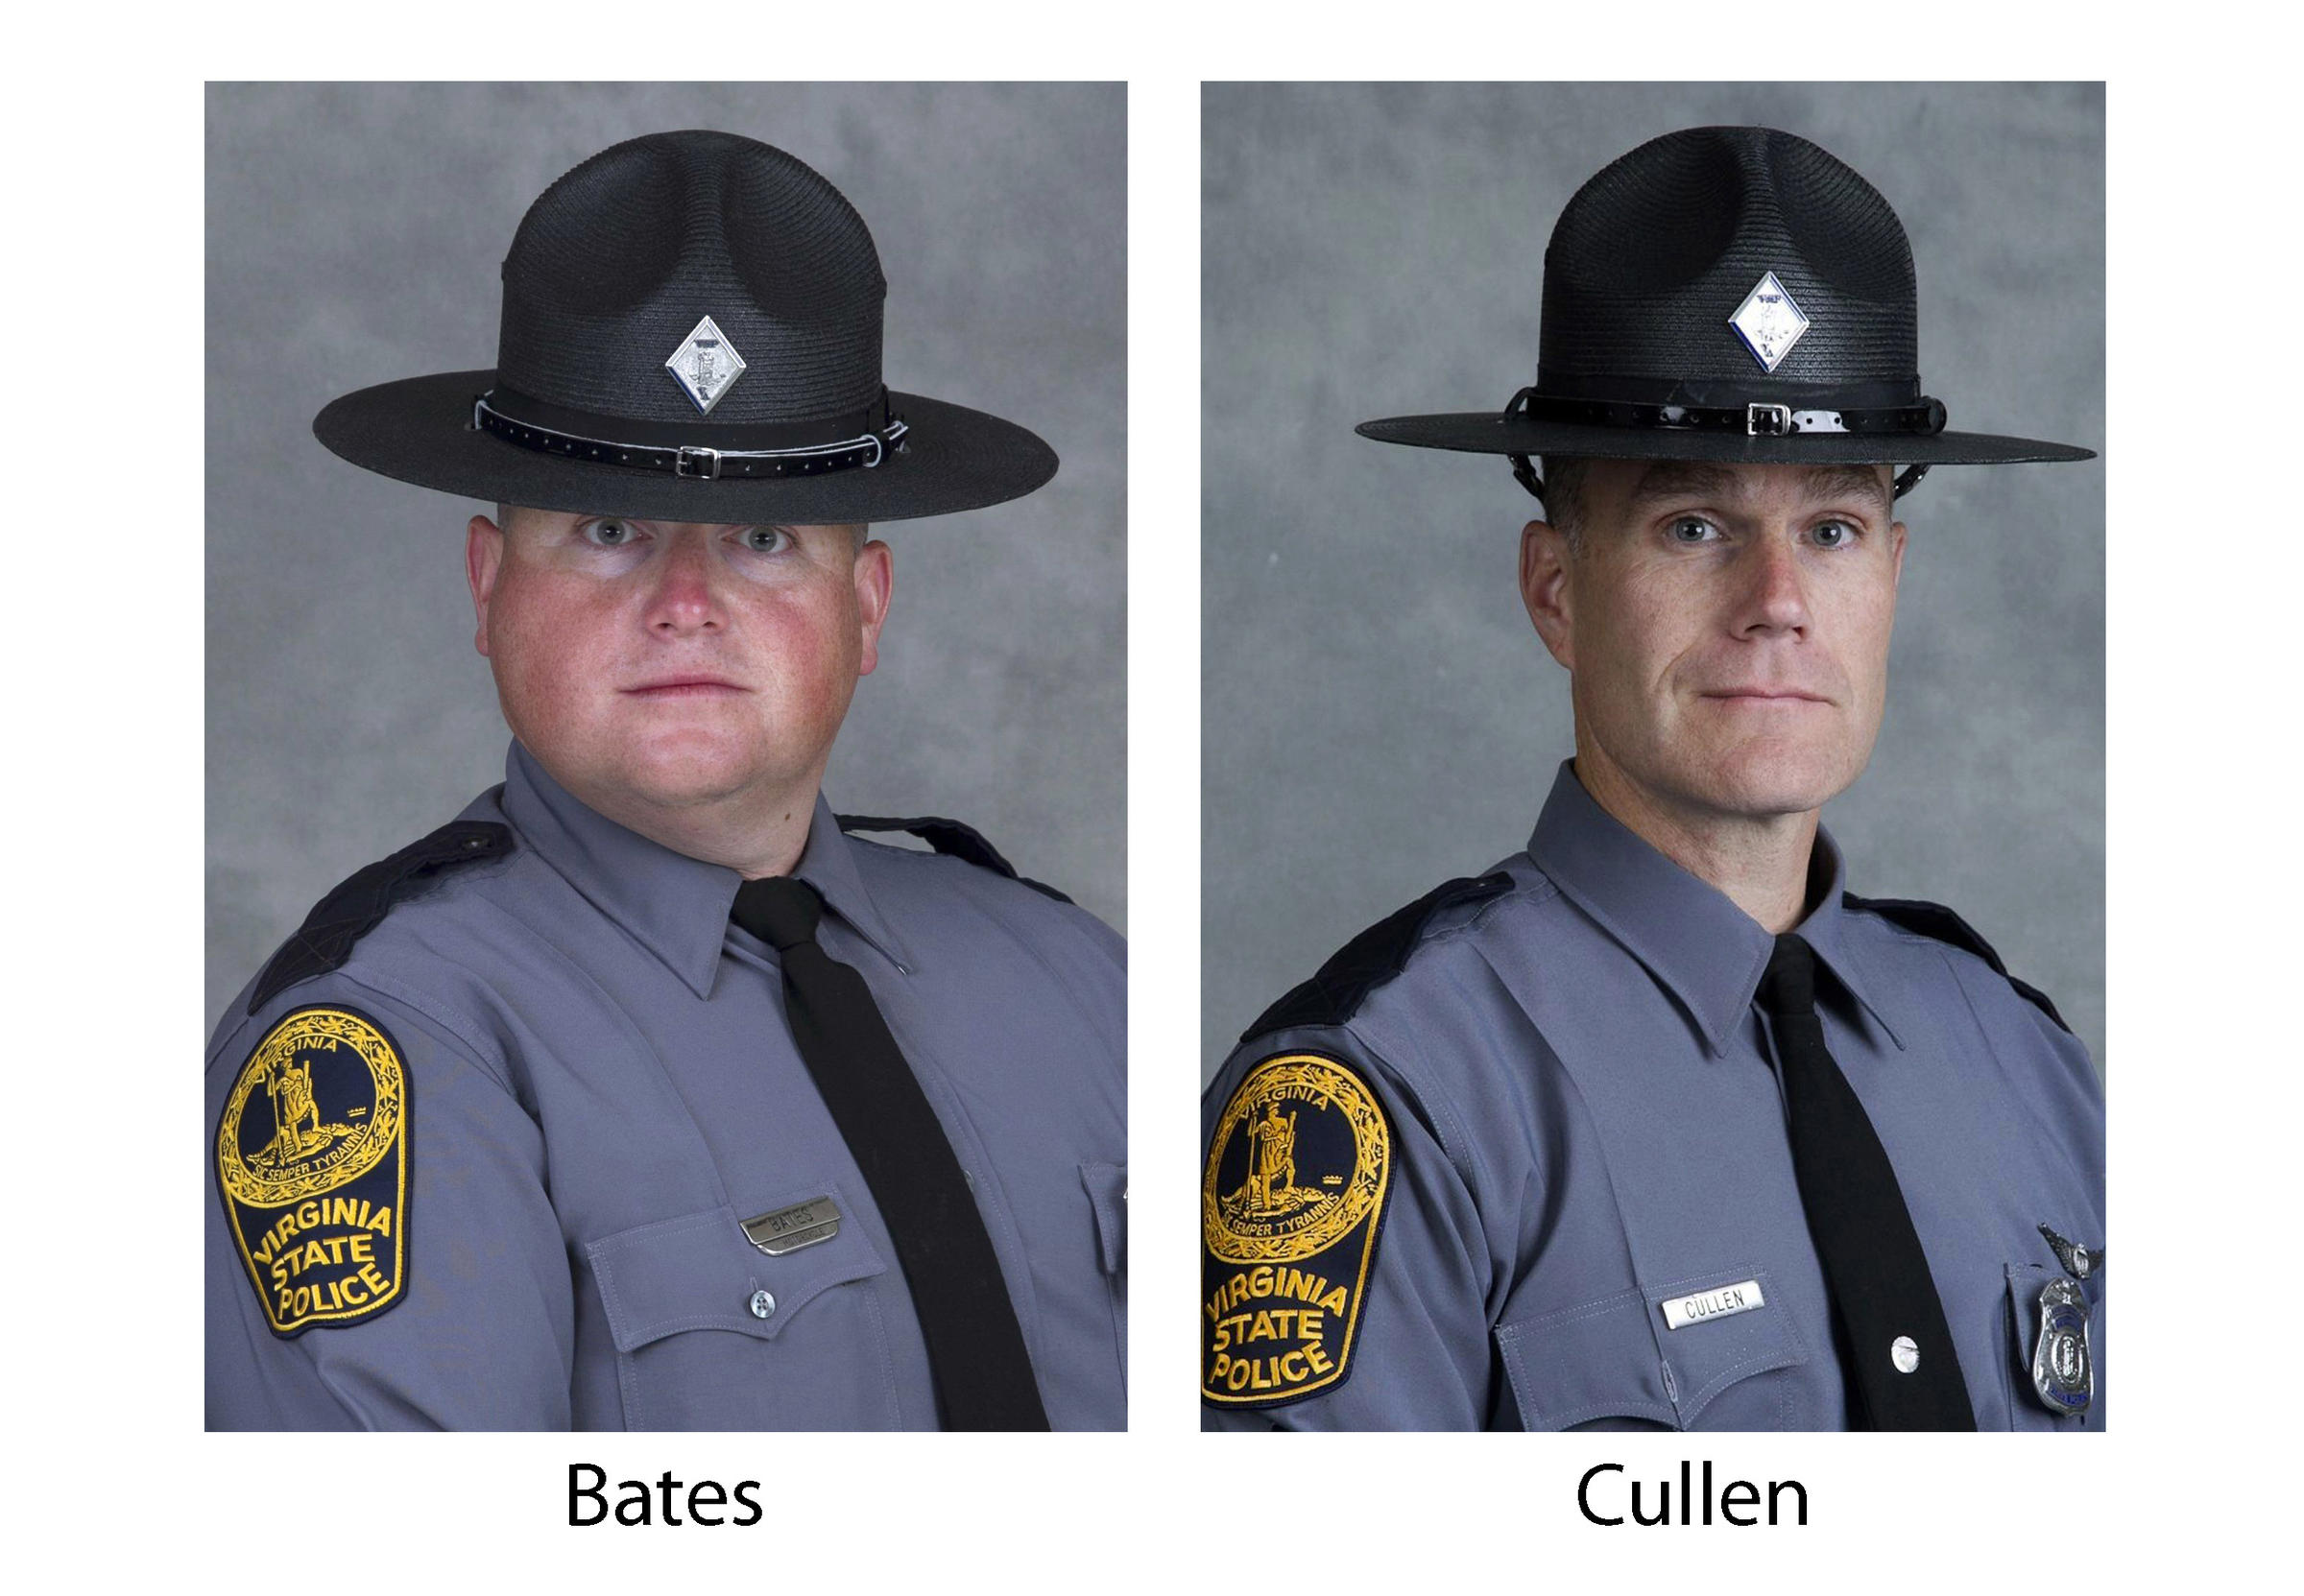 Virginia State troopers killed when chopper crashes near nationalist rally